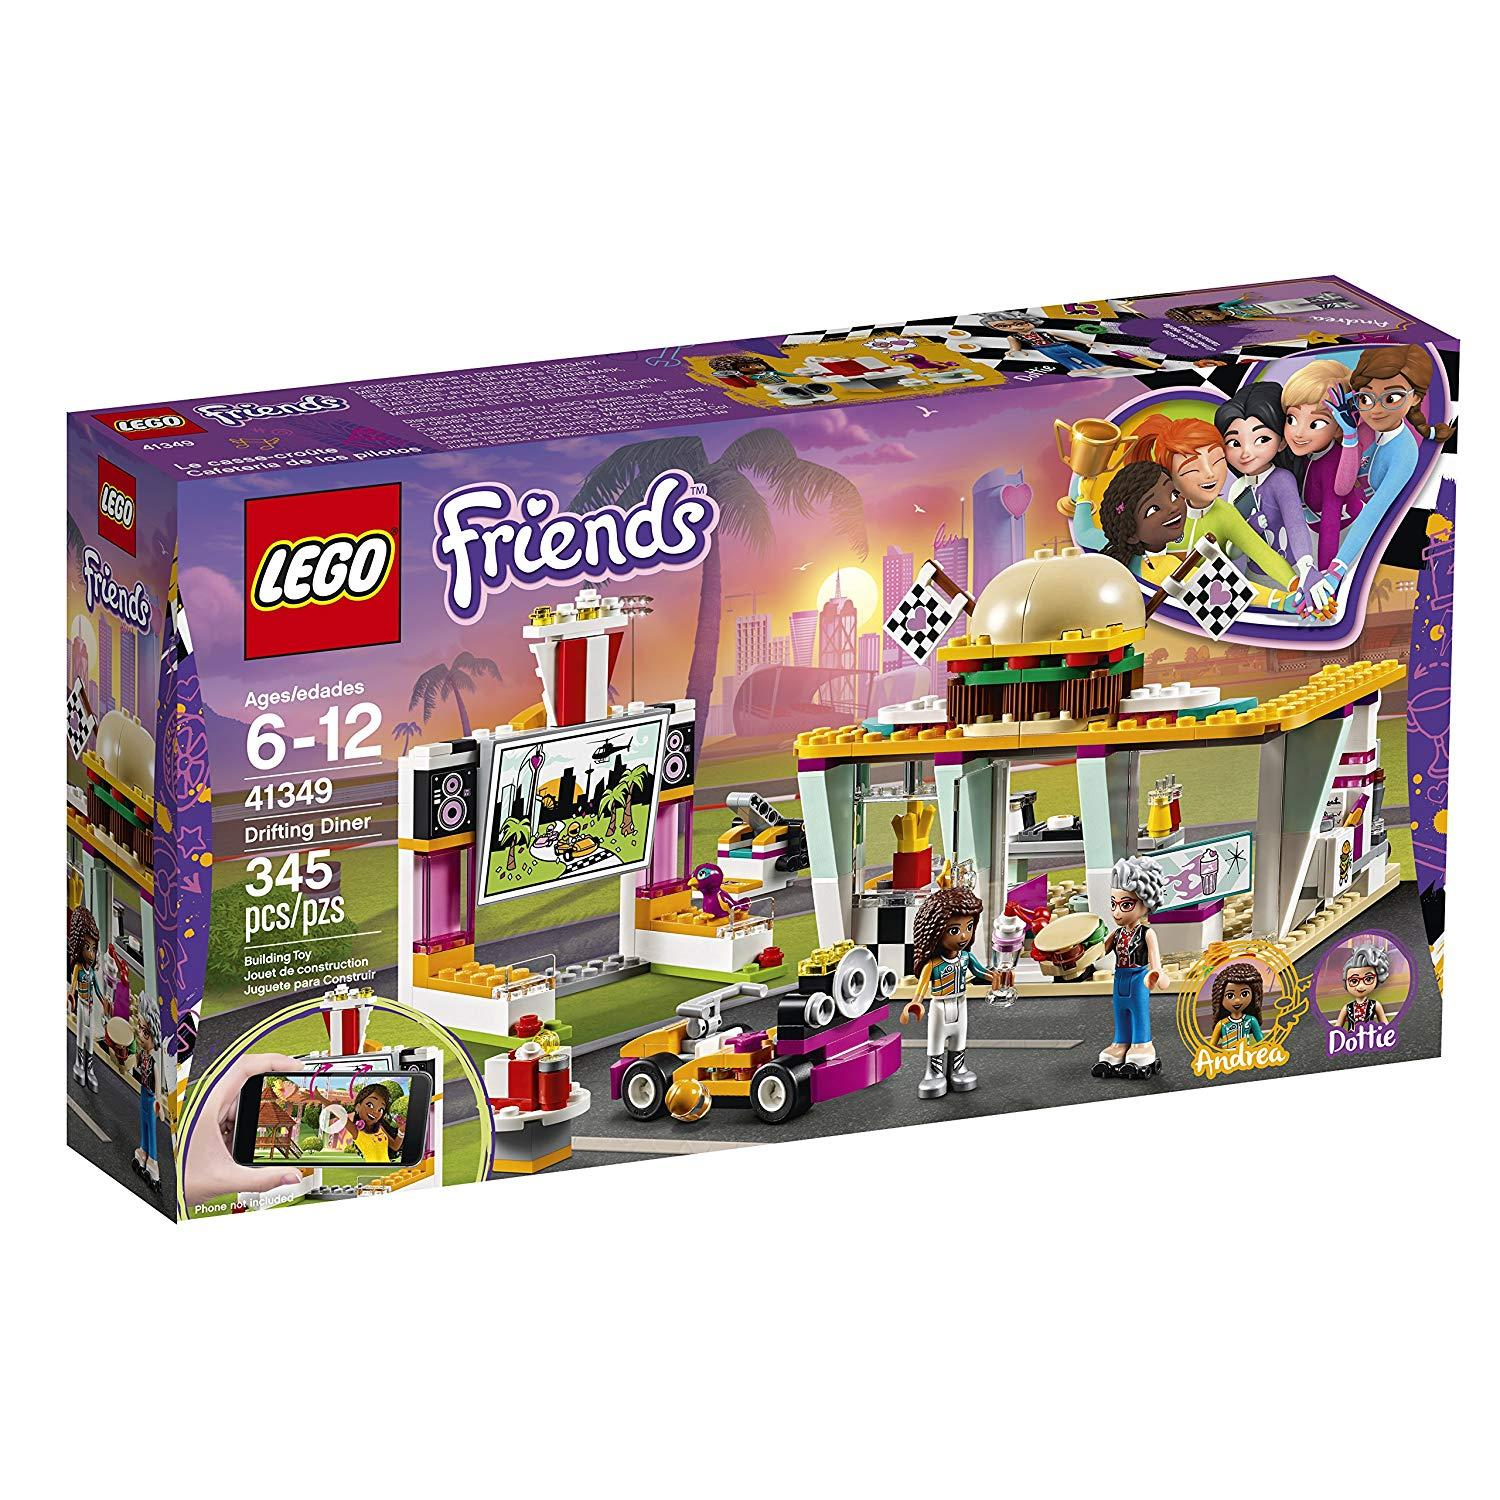 Lego Friends Drifting Diner (41349)